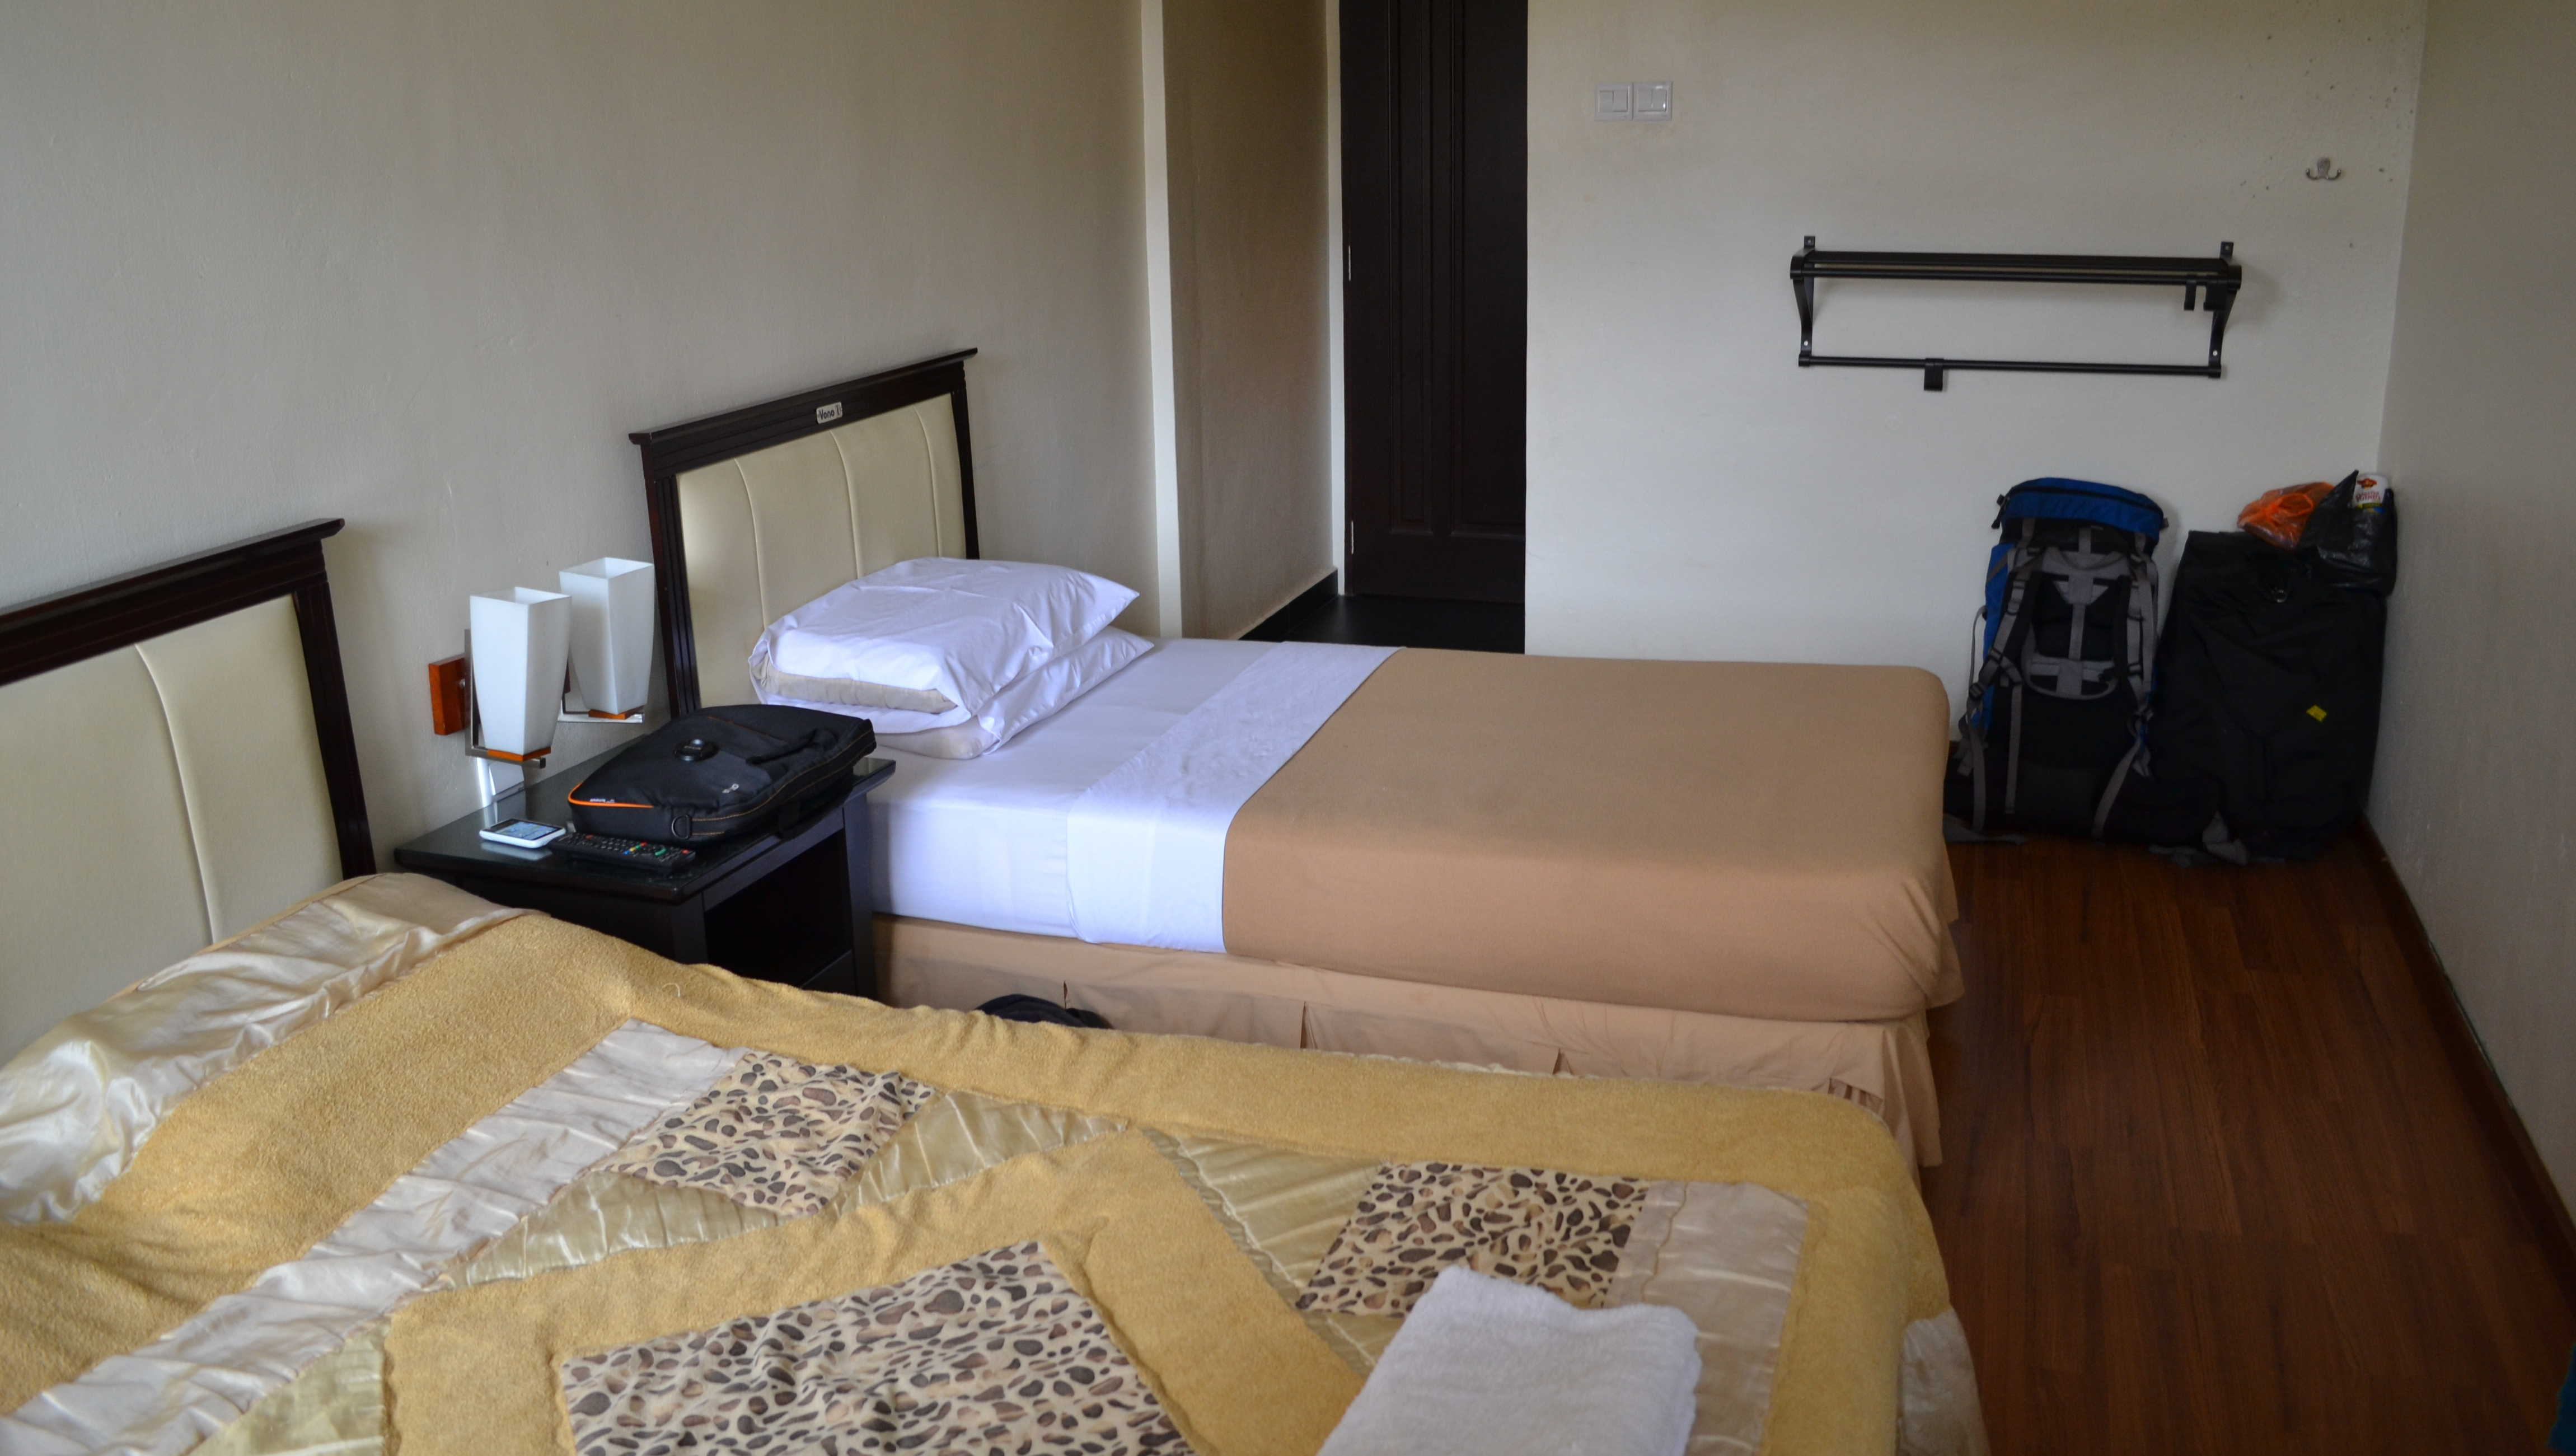 Travel Fears What If My Hostel Has Bed Bugs